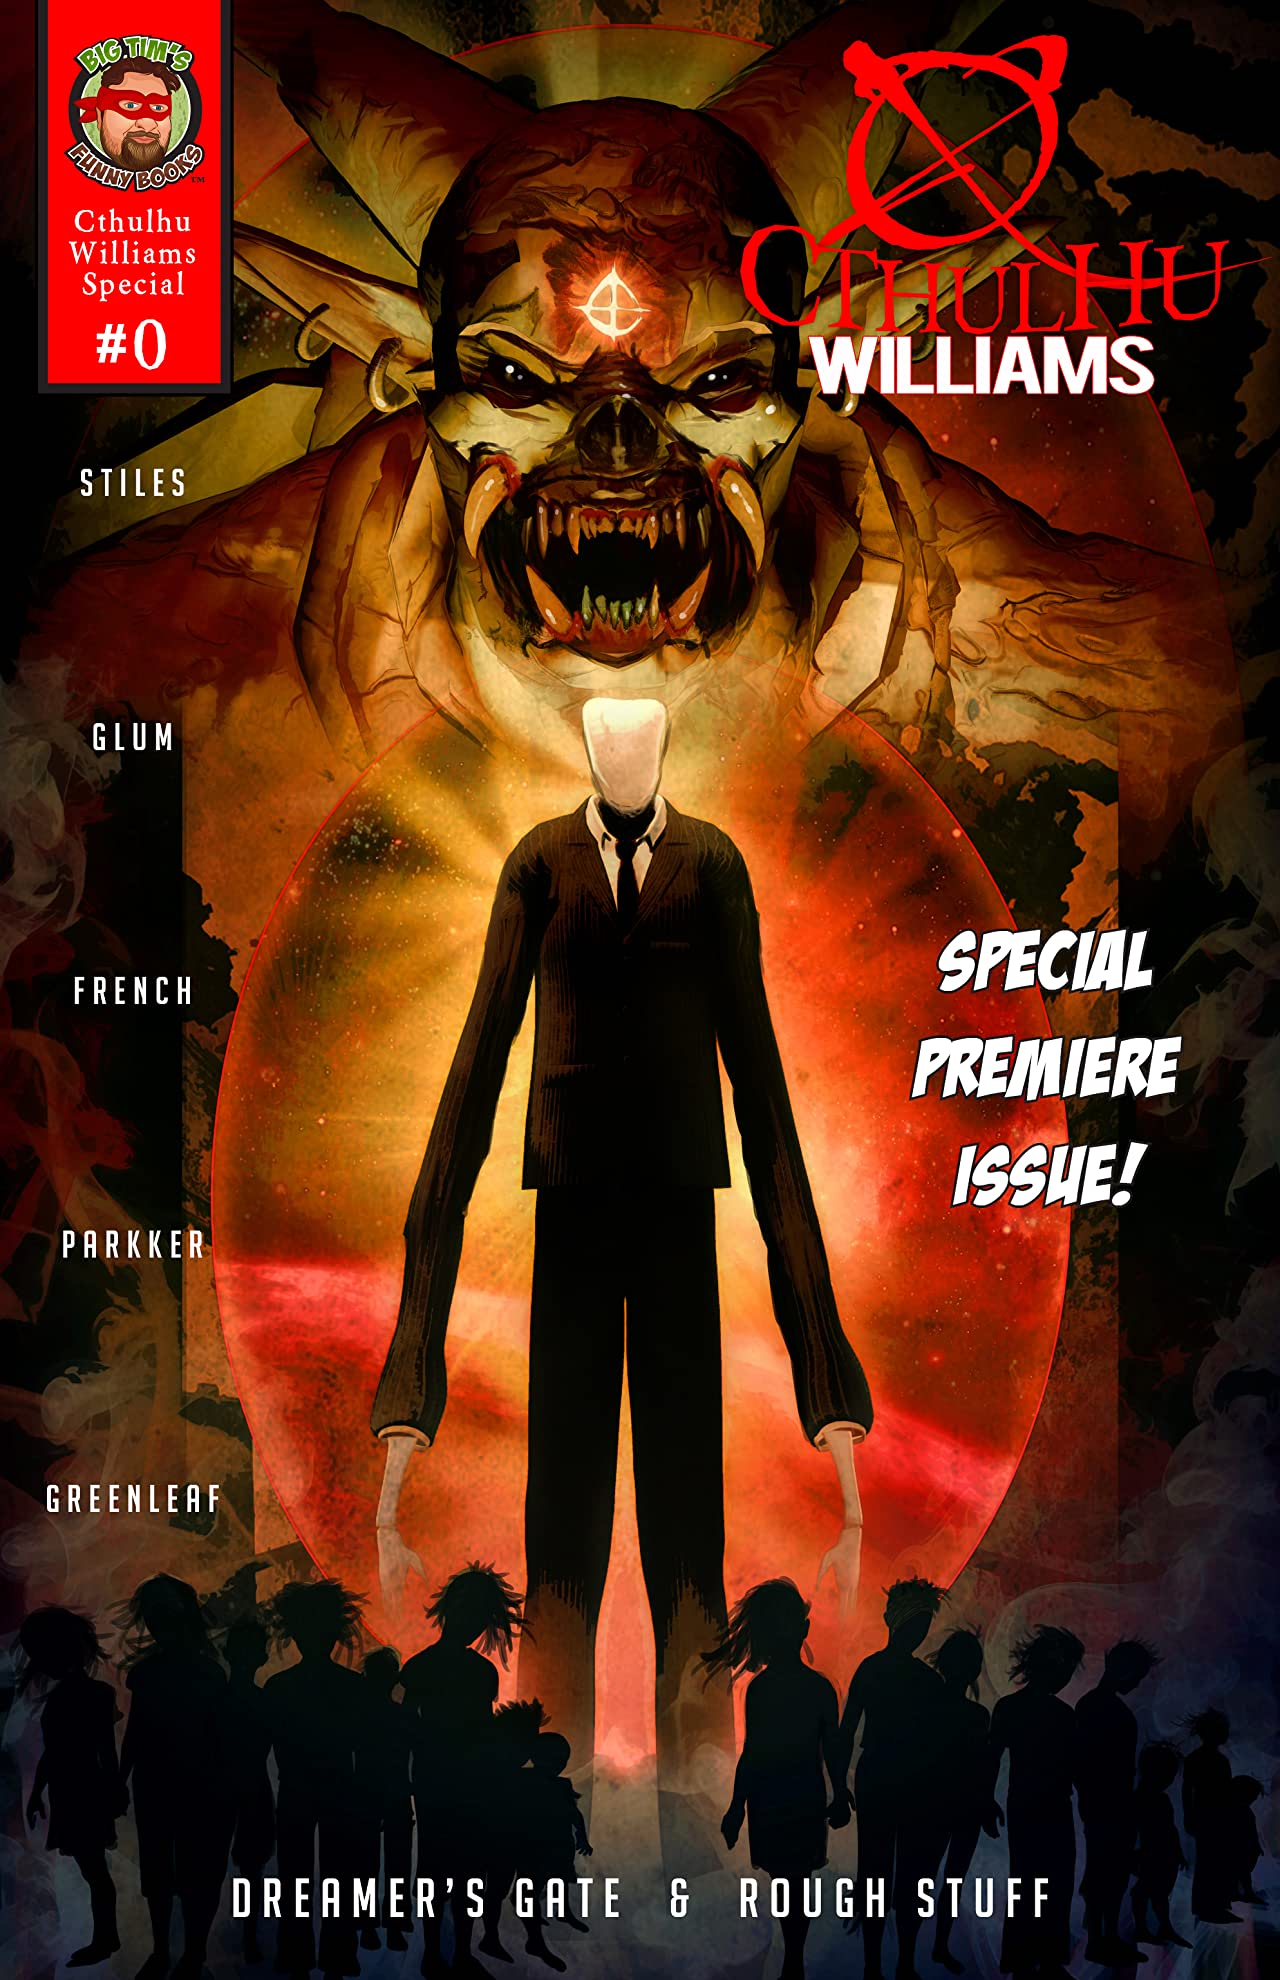 Cthulhu Williams #0